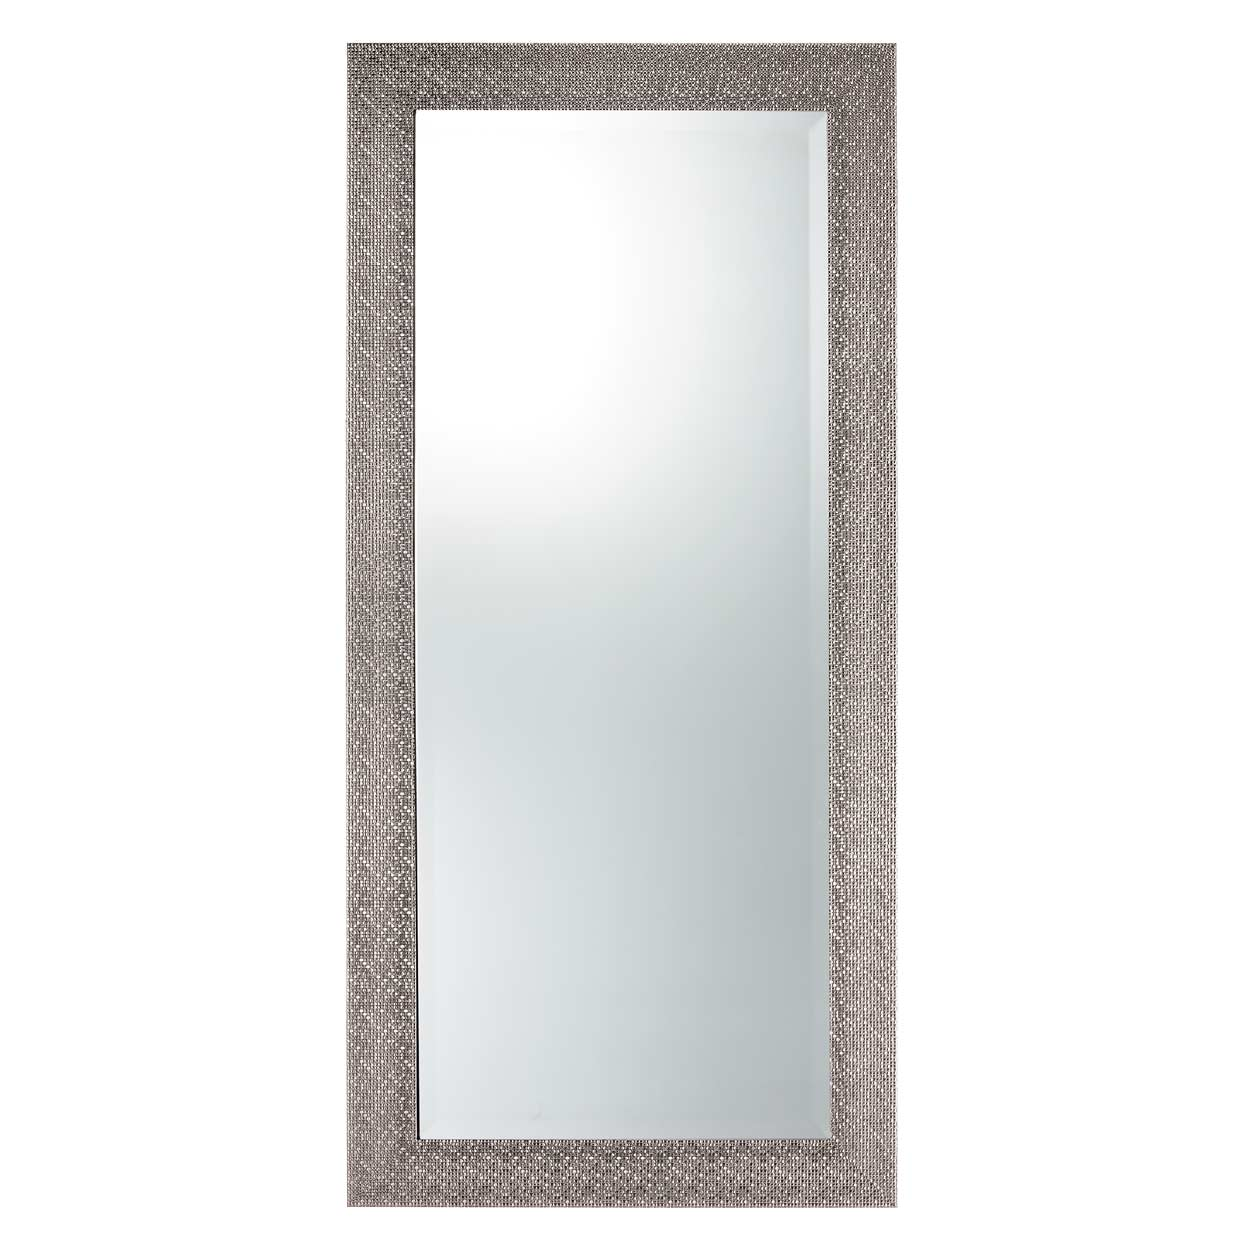 Diamond Framed Hair Salon Mirror alternative product image 1